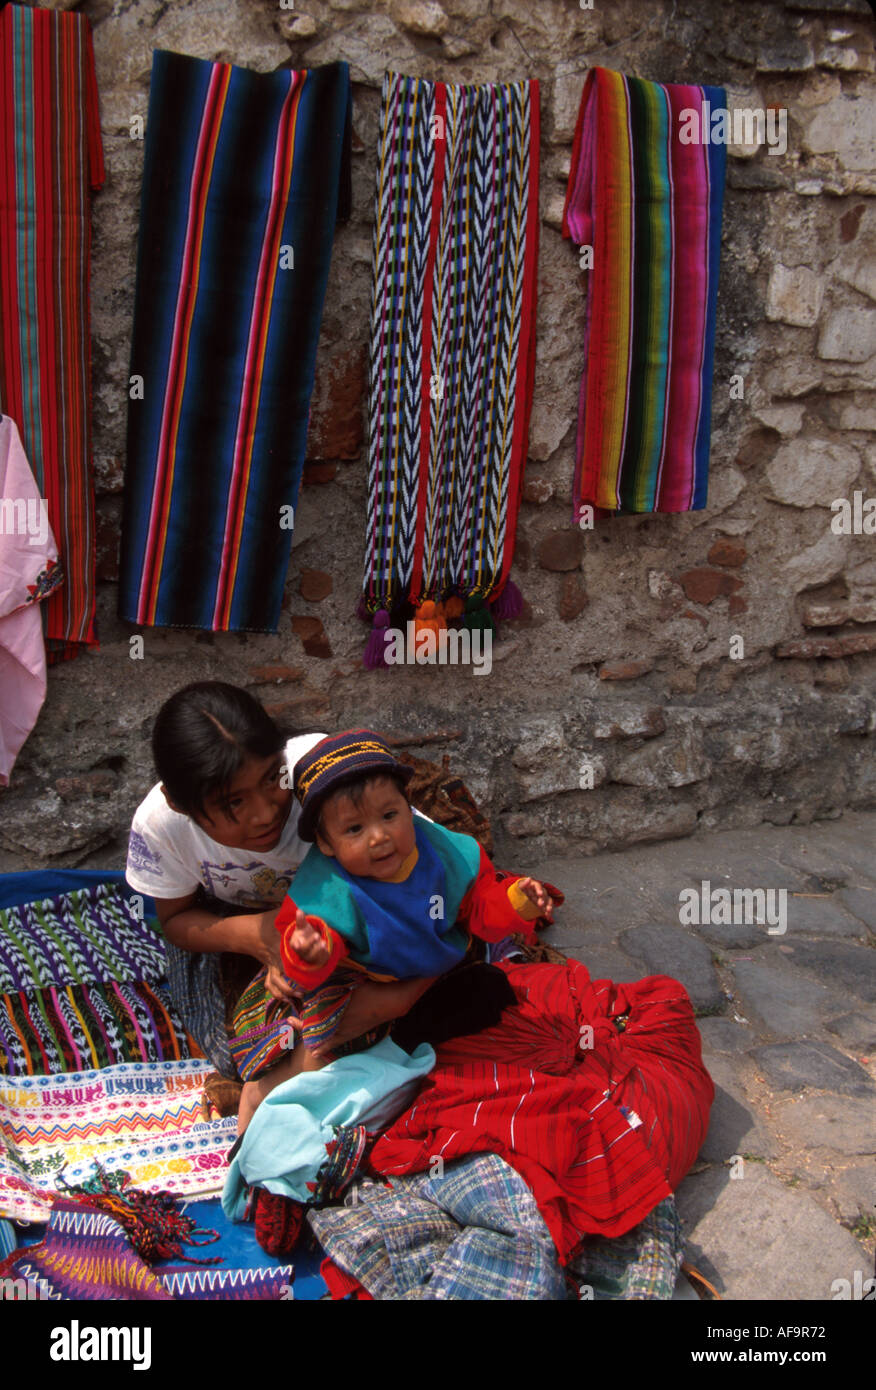 Guatemala La Antigua colonial capitol until earthquake Cakchiquel Indigenous family vendors - Stock Image